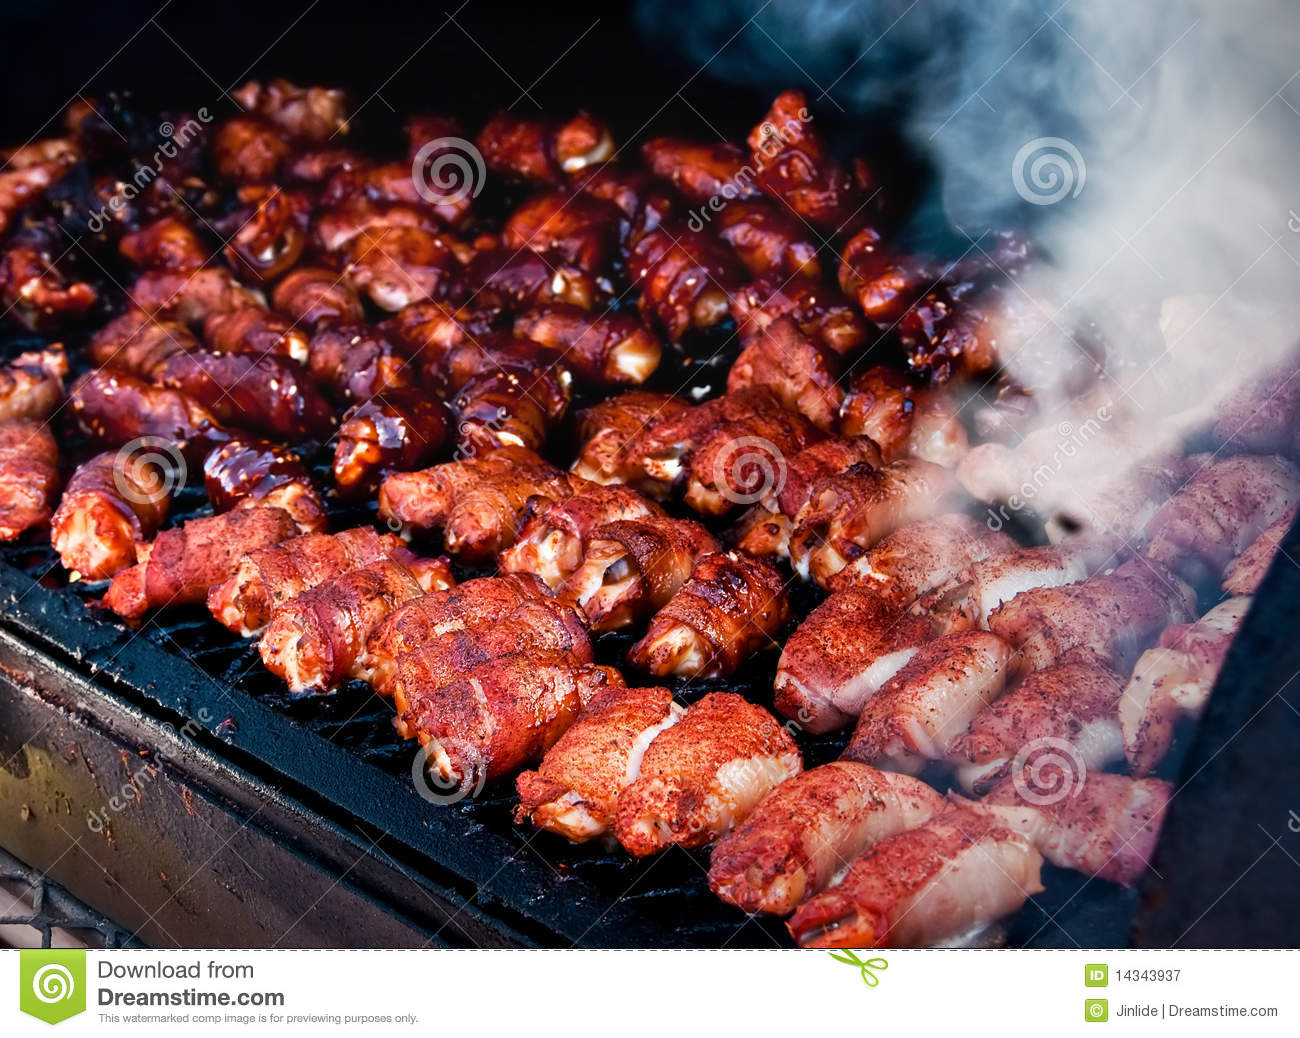 Bacon Wrapped Shrimp Smoking On Grill Royalty Free Stock Photography ...